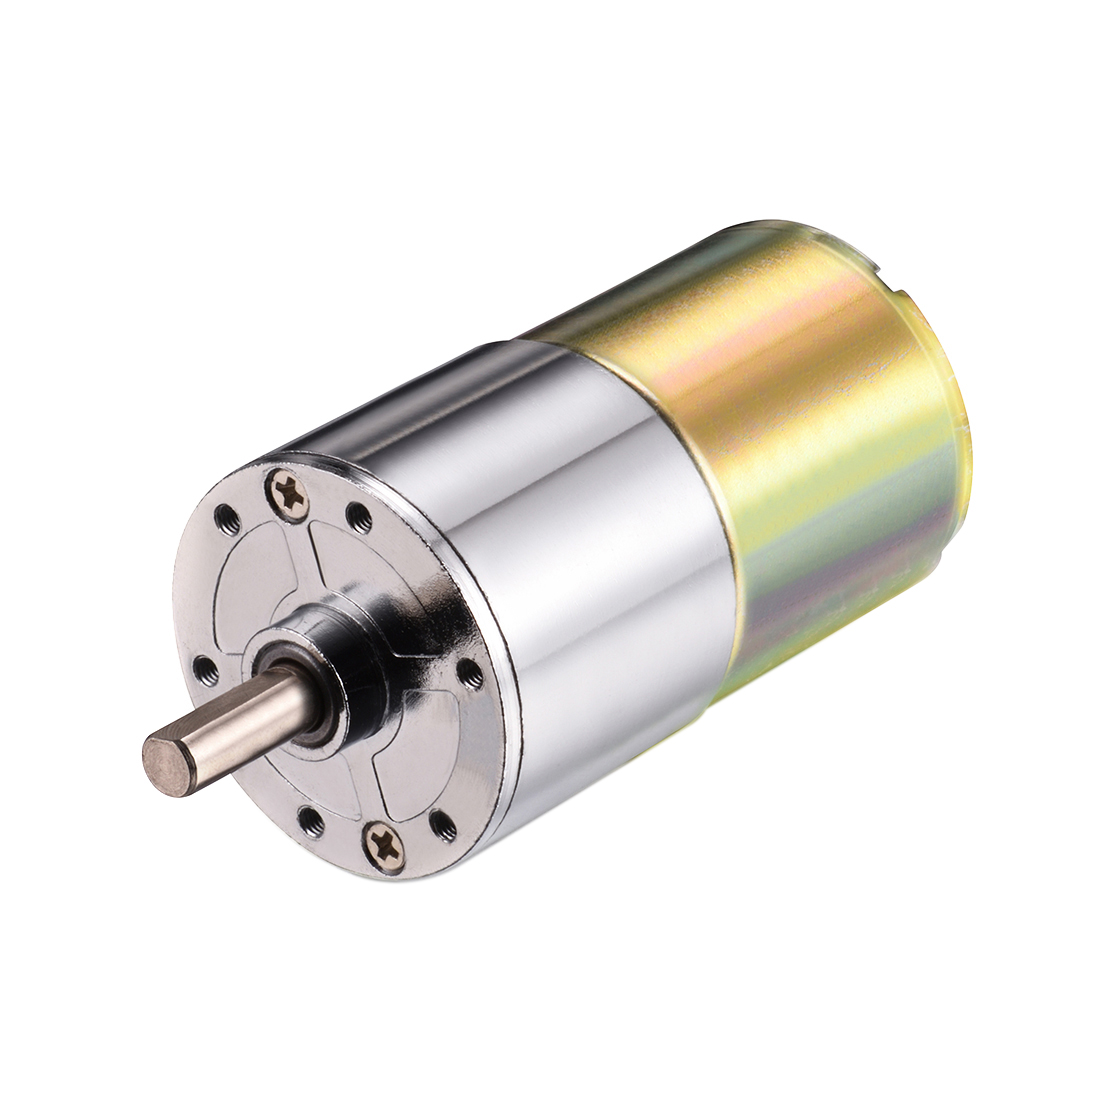 DC 24V 20RPM Micro Gear Box Motor Speed Reduction Electric Gearbox Centric Output Shaft